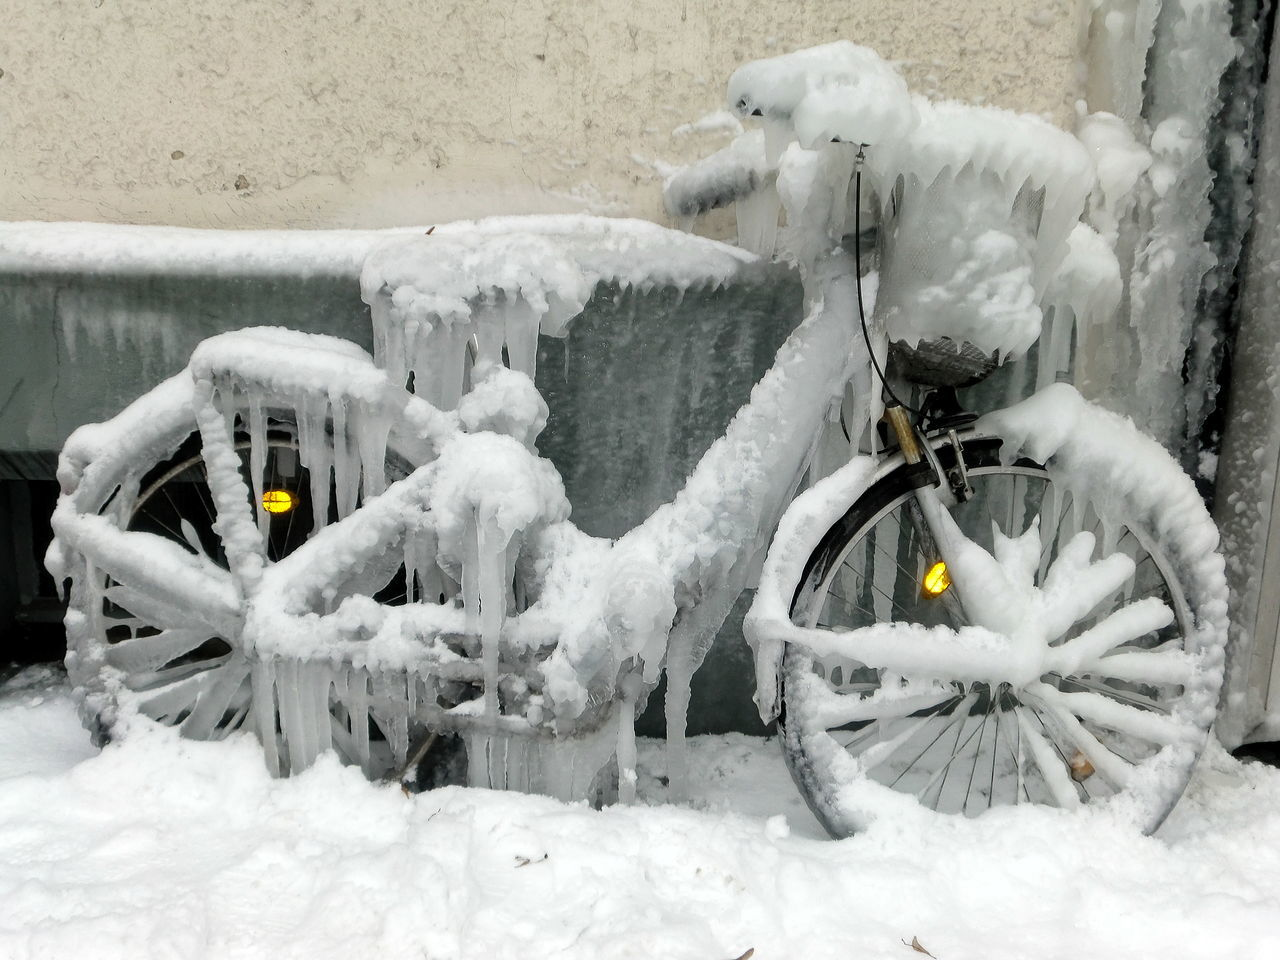 snow, winter, cold temperature, white color, transportation, covering, nature, day, frozen, no people, mode of transportation, outdoors, bicycle, land vehicle, field, architecture, snowing, land, extreme weather, wheel, blizzard